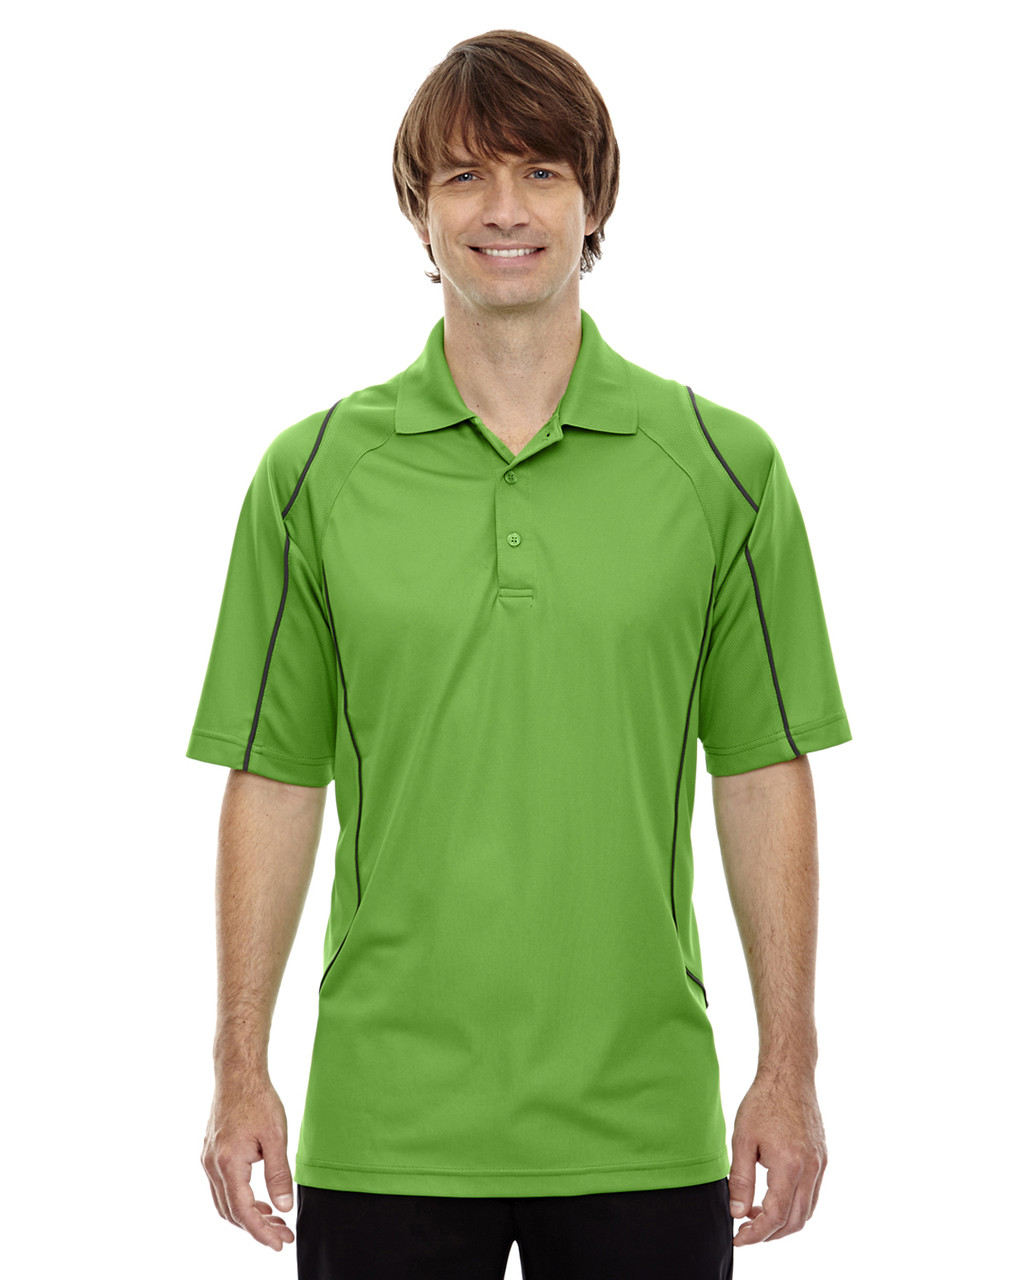 Vally Green - 85107 Ash City - Extreme Eperformance Men's Velocity Polo Shirt with Piping